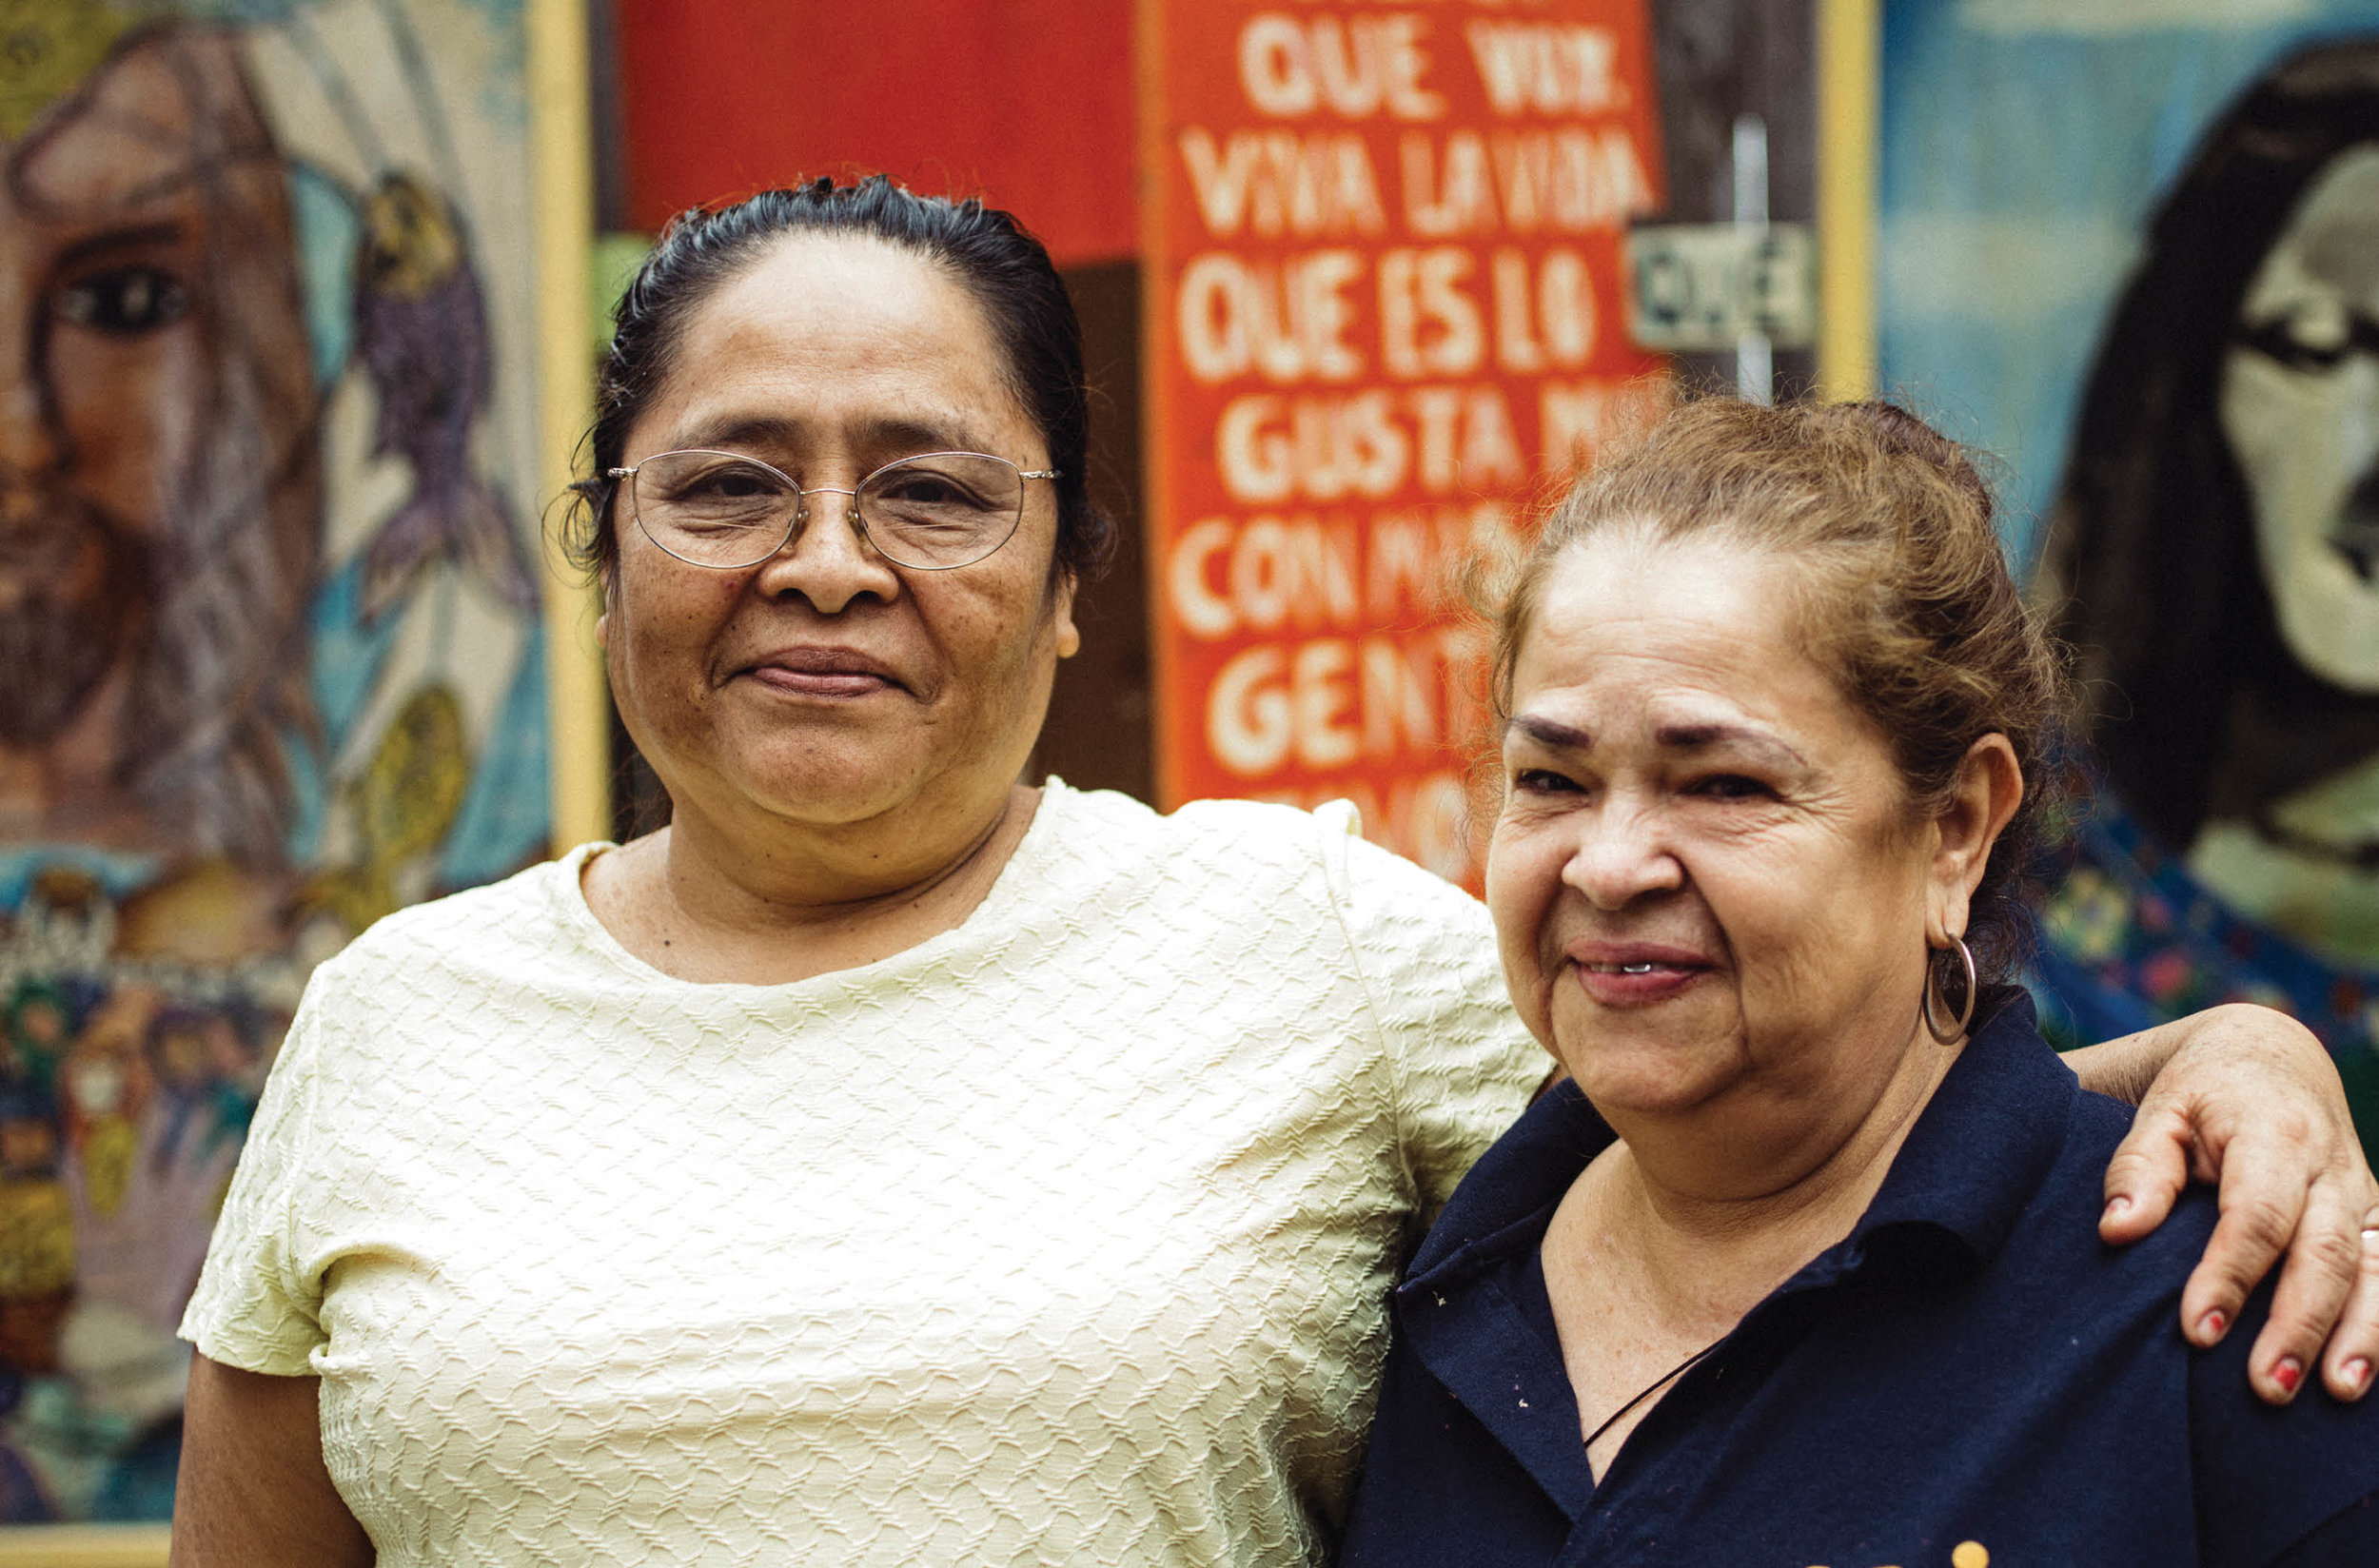 Where Hope Lives - EASTside Magazine, April 2018If walls could talk, the walls of the bright orange house nestled at the end of a cul-de-sac in the shadows of East Austin's newly constructed apartments would have endless tales of wars, persecution, and natural disasters. Read more.